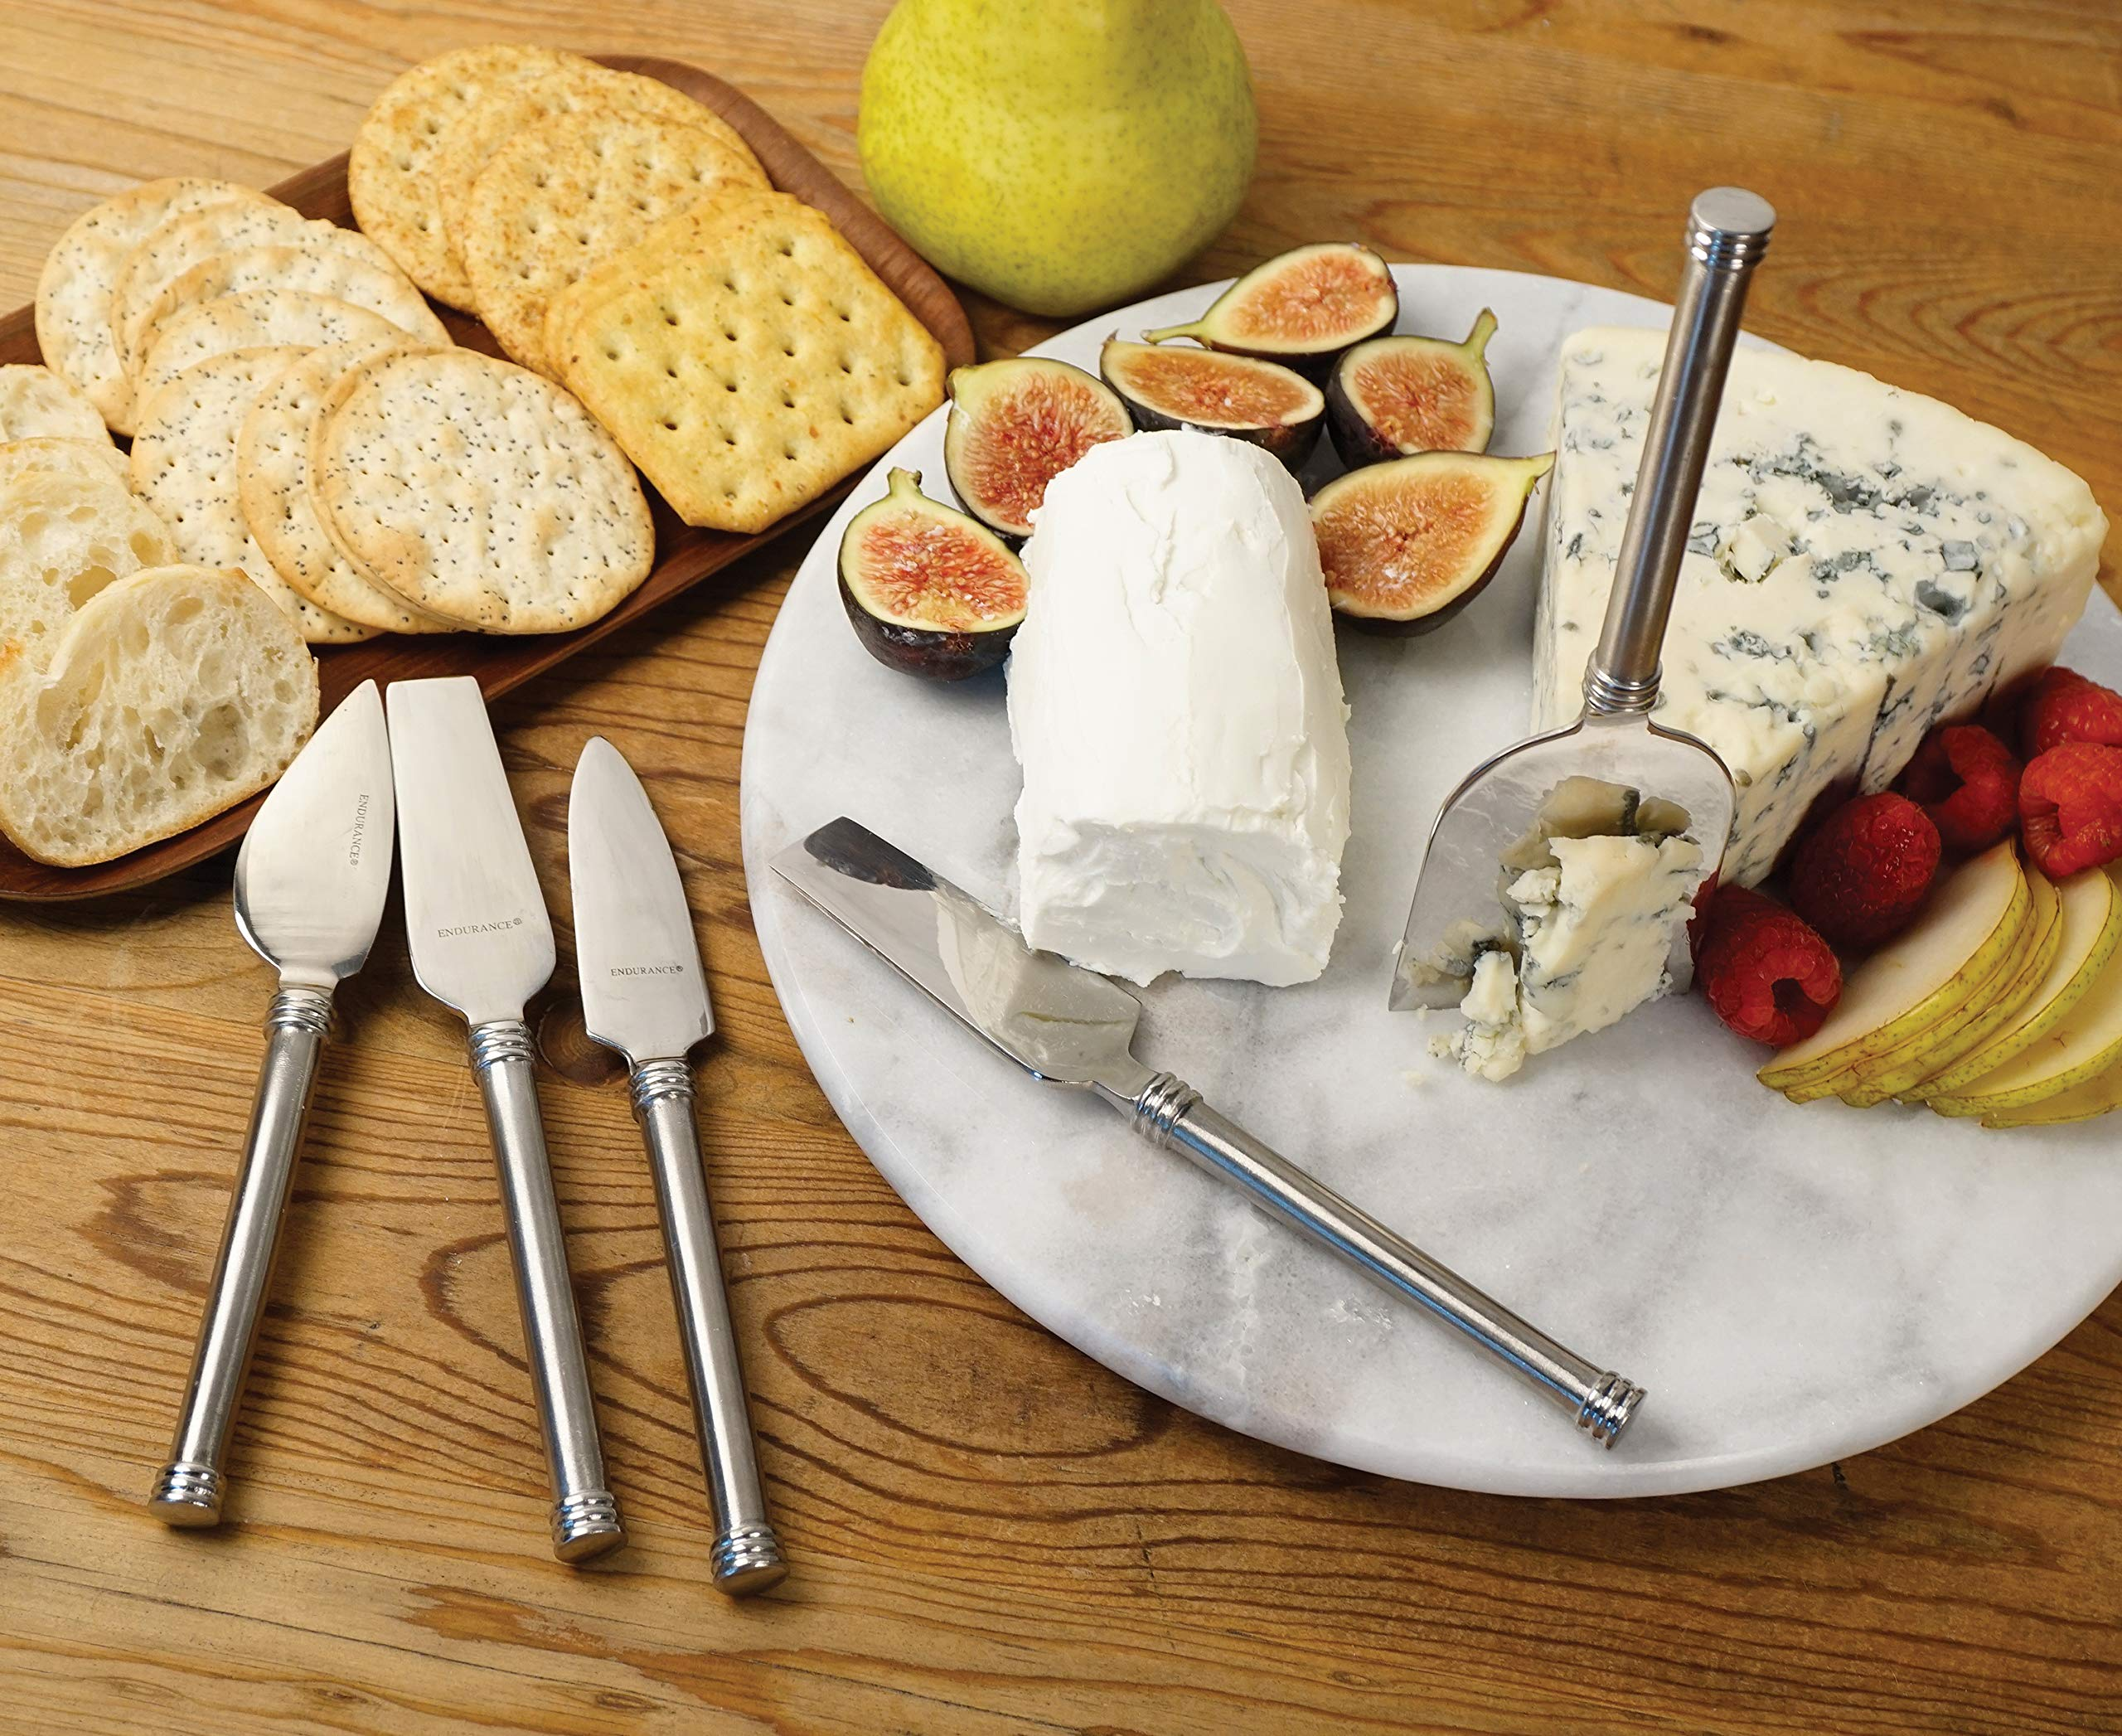 RSVP International Endurance (NIVE-5) Stainless Steel Cheese Knives, Set of 5 | Five Different Blades | Cut & Serve Cheeses in Style | Great for Parties, Events, or Home Use | Dishwasher Safe by RSVP International